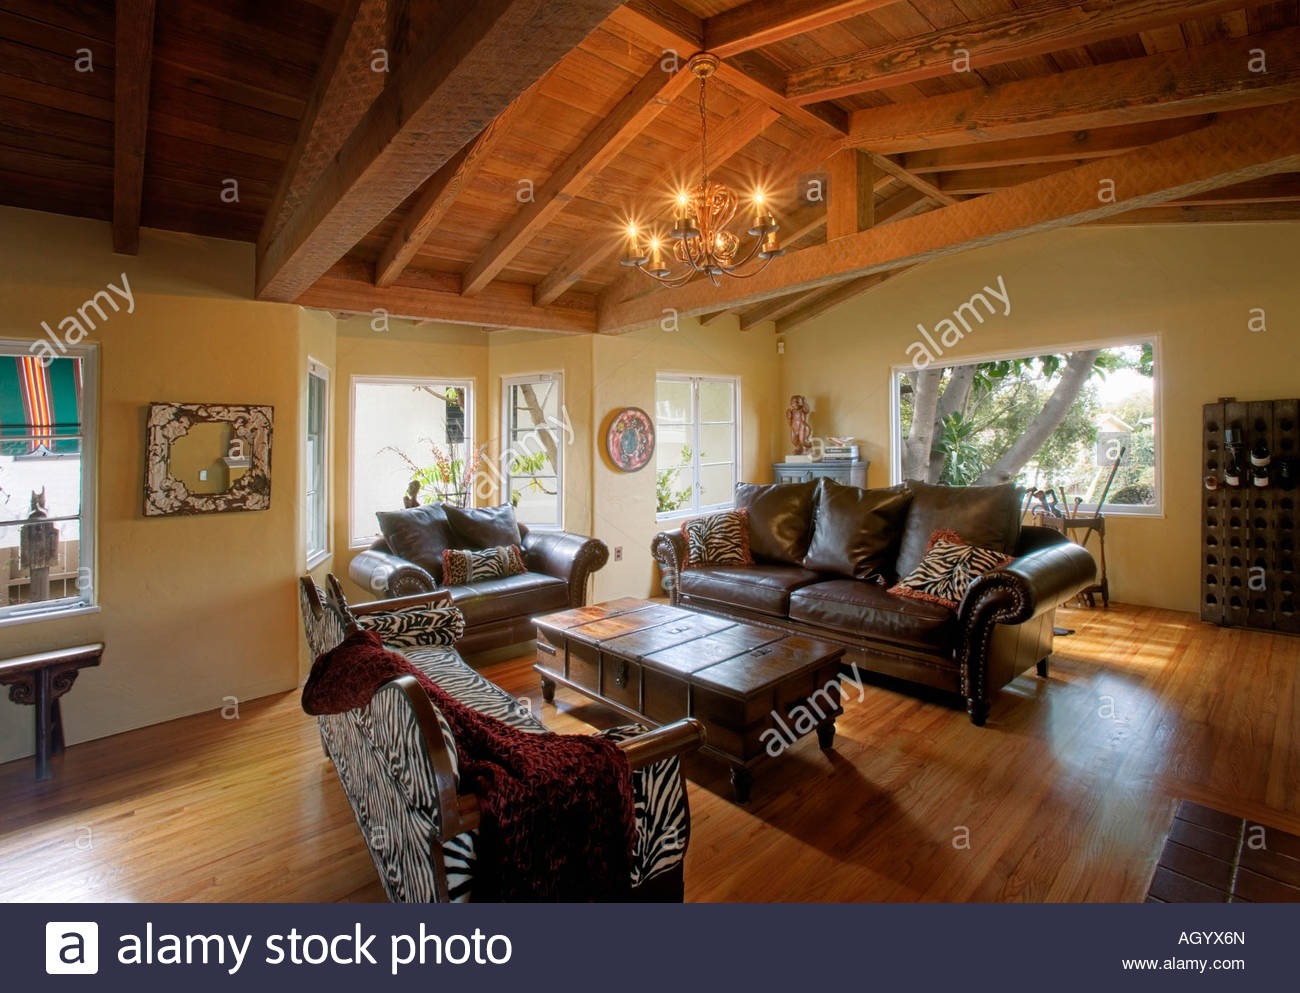 Cozy Rustic Living Room With Vaulted Wood Ceiling Stock